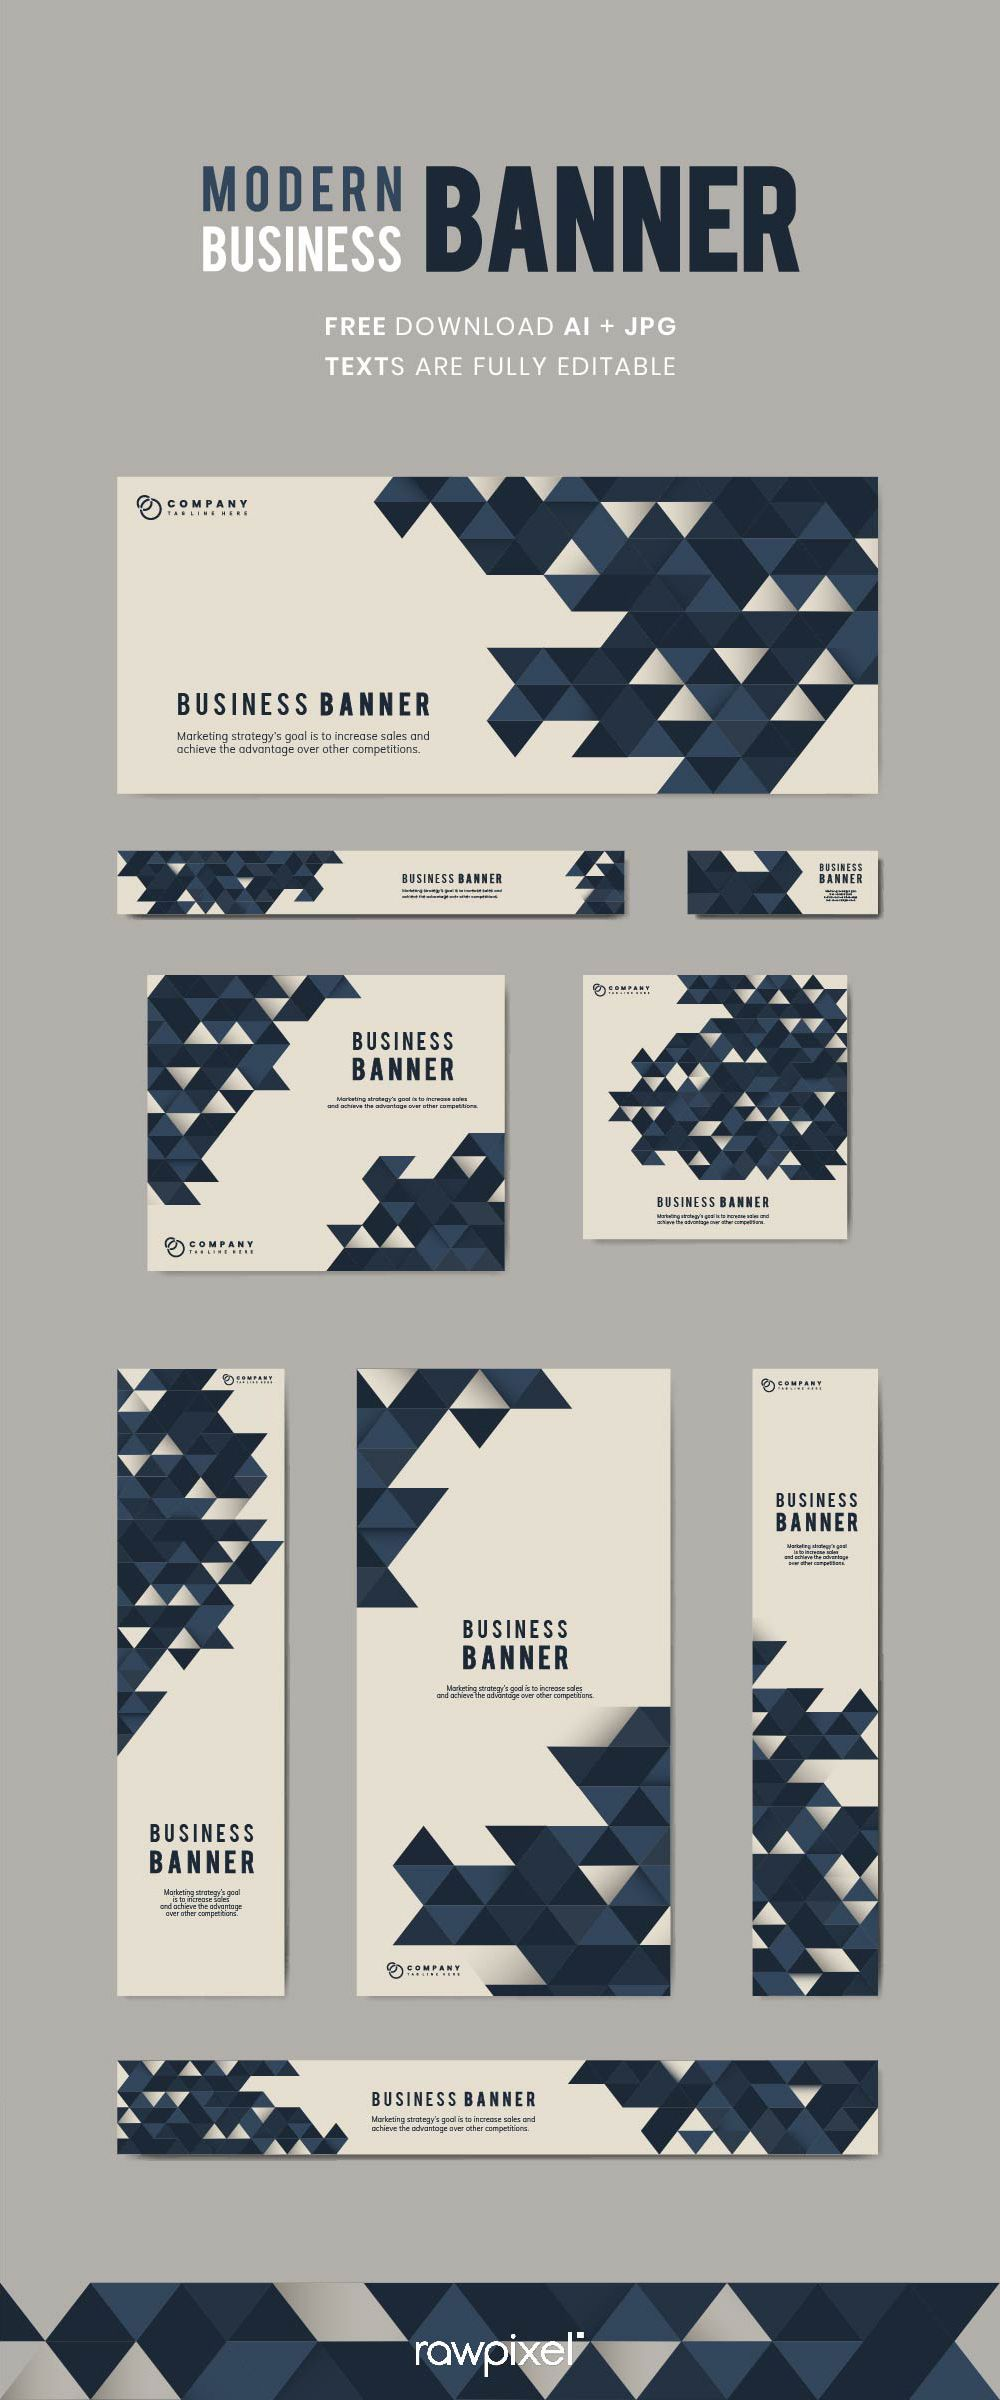 Download Beautiful Free Royalty Free Geometric Background Banner